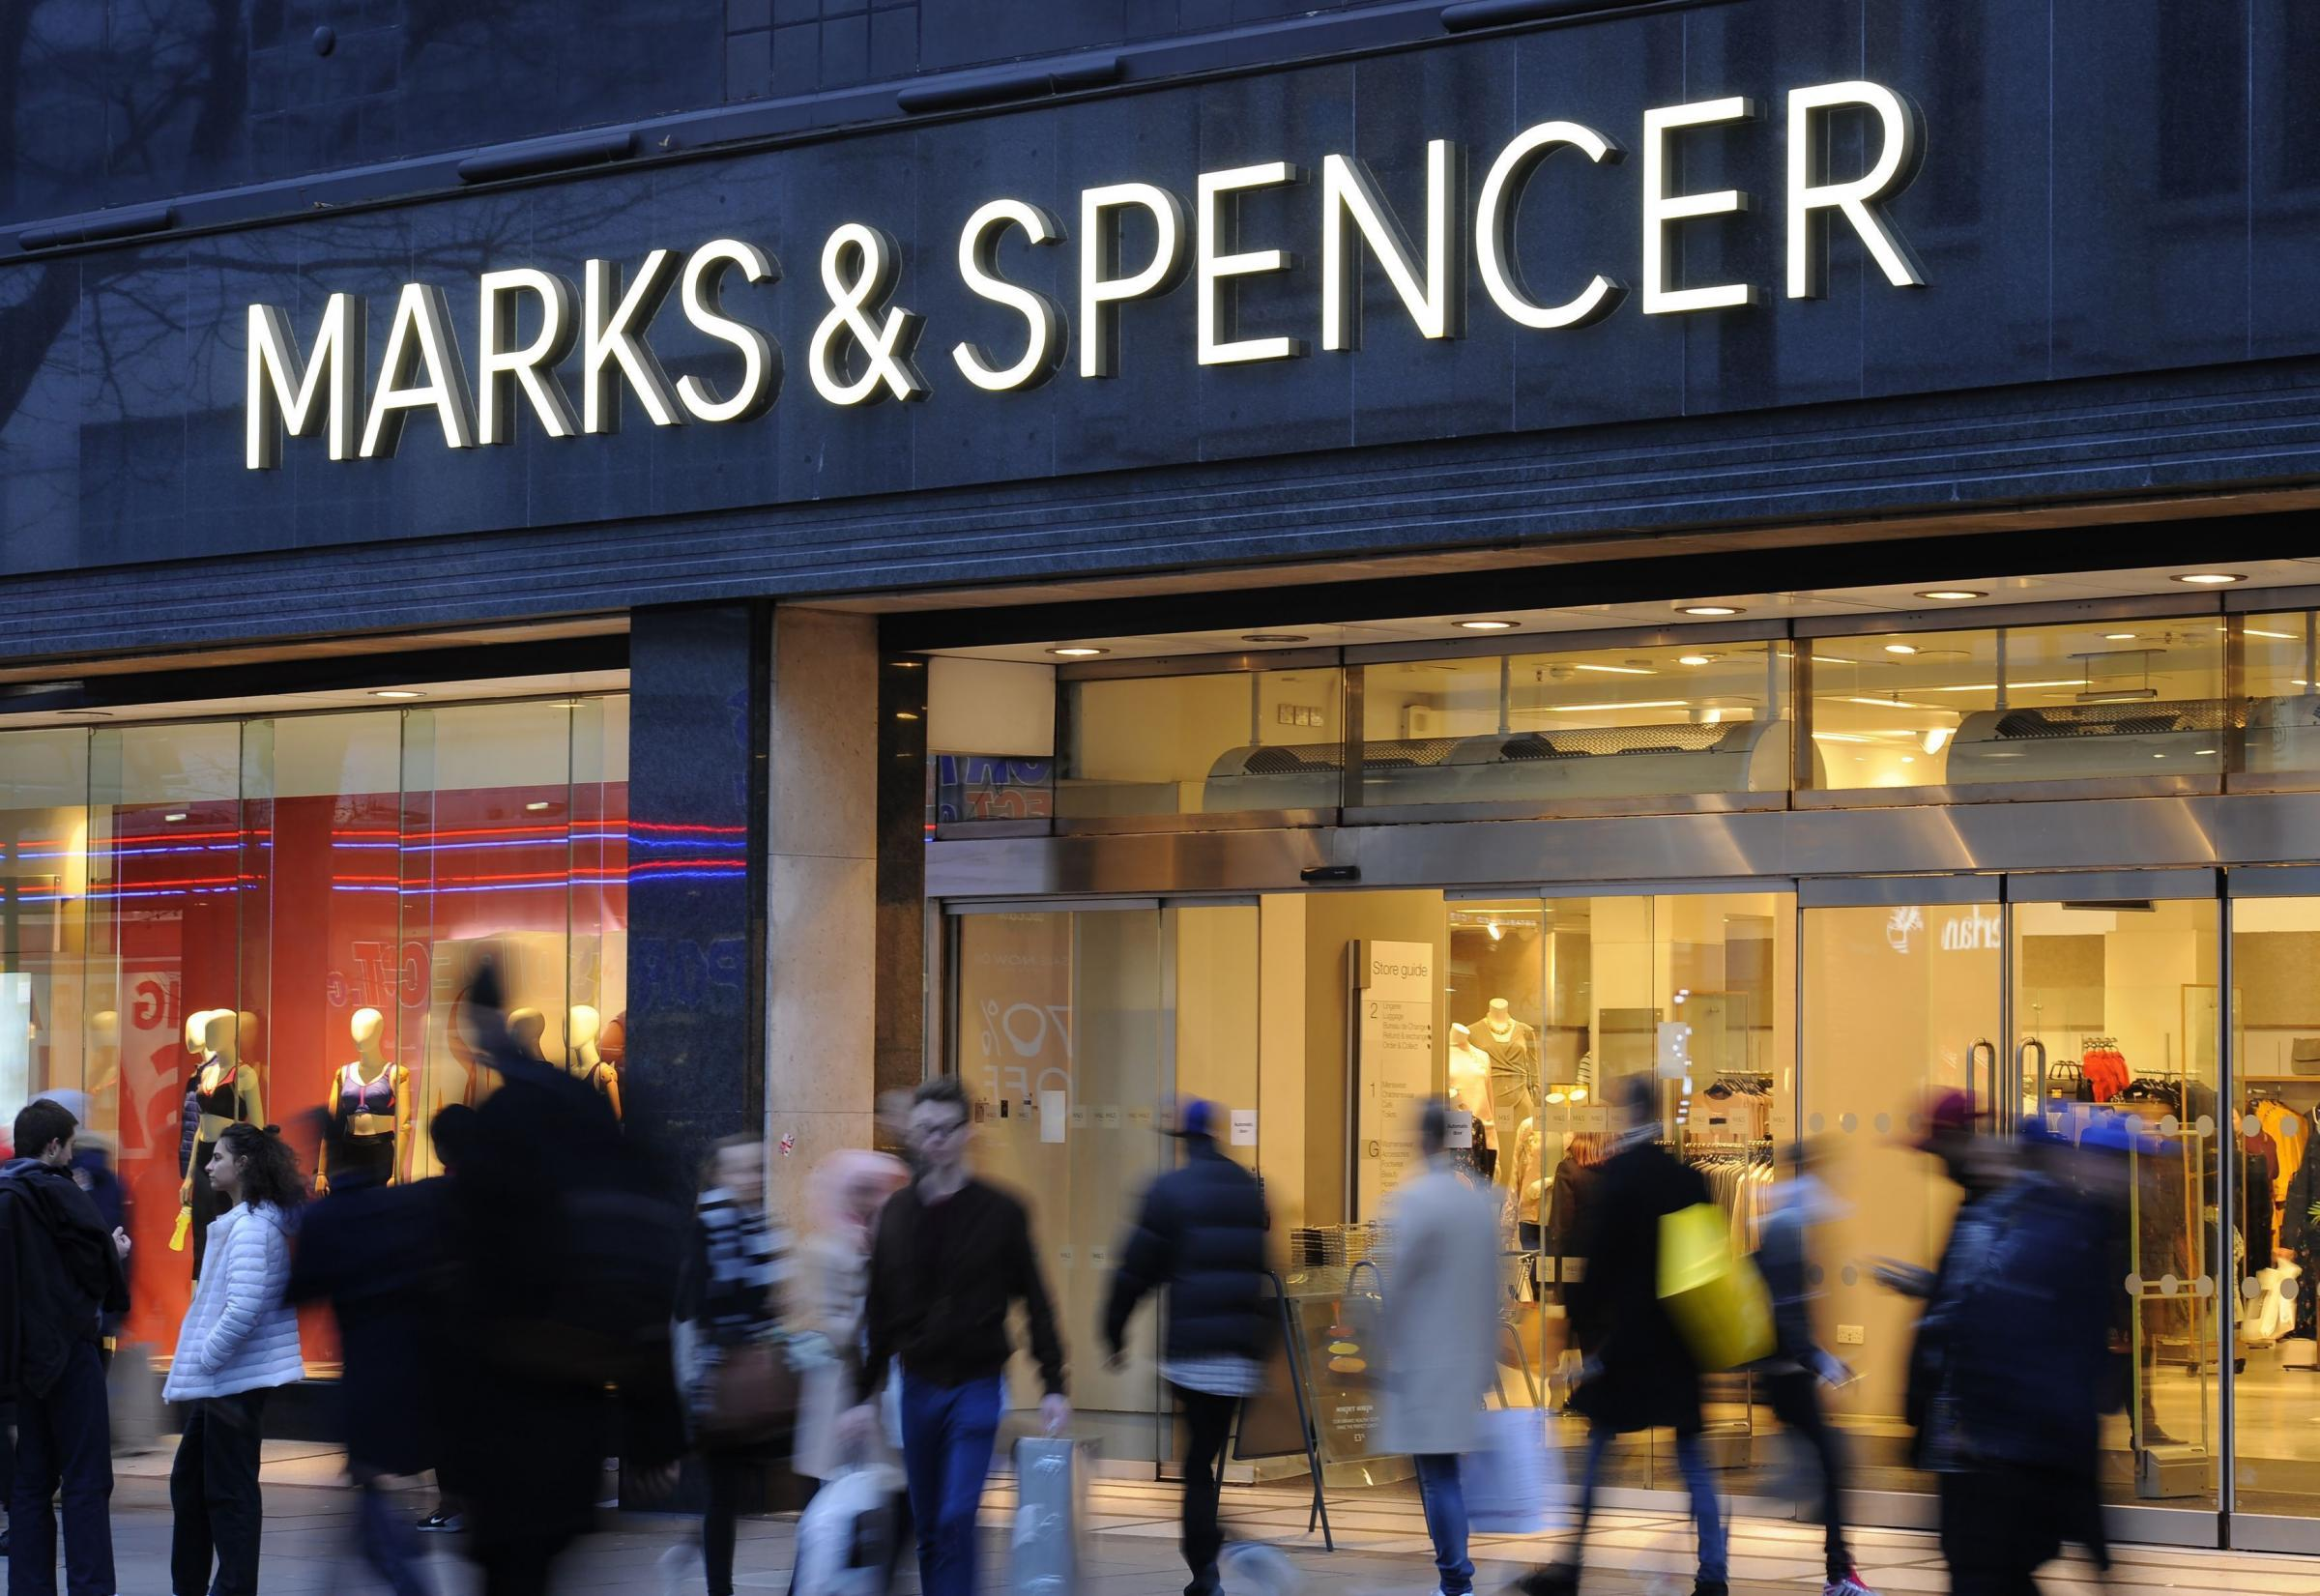 File photo dated 11/01/2017 of Marks and Spencer on Oxford Street in London. Marks & Spencer has announced plans to close another eight stores in a move impacting 468 jobs. PRESS ASSOCIATION Photo. Issue date: Wednesday January 31, 2018. See PA story CITY